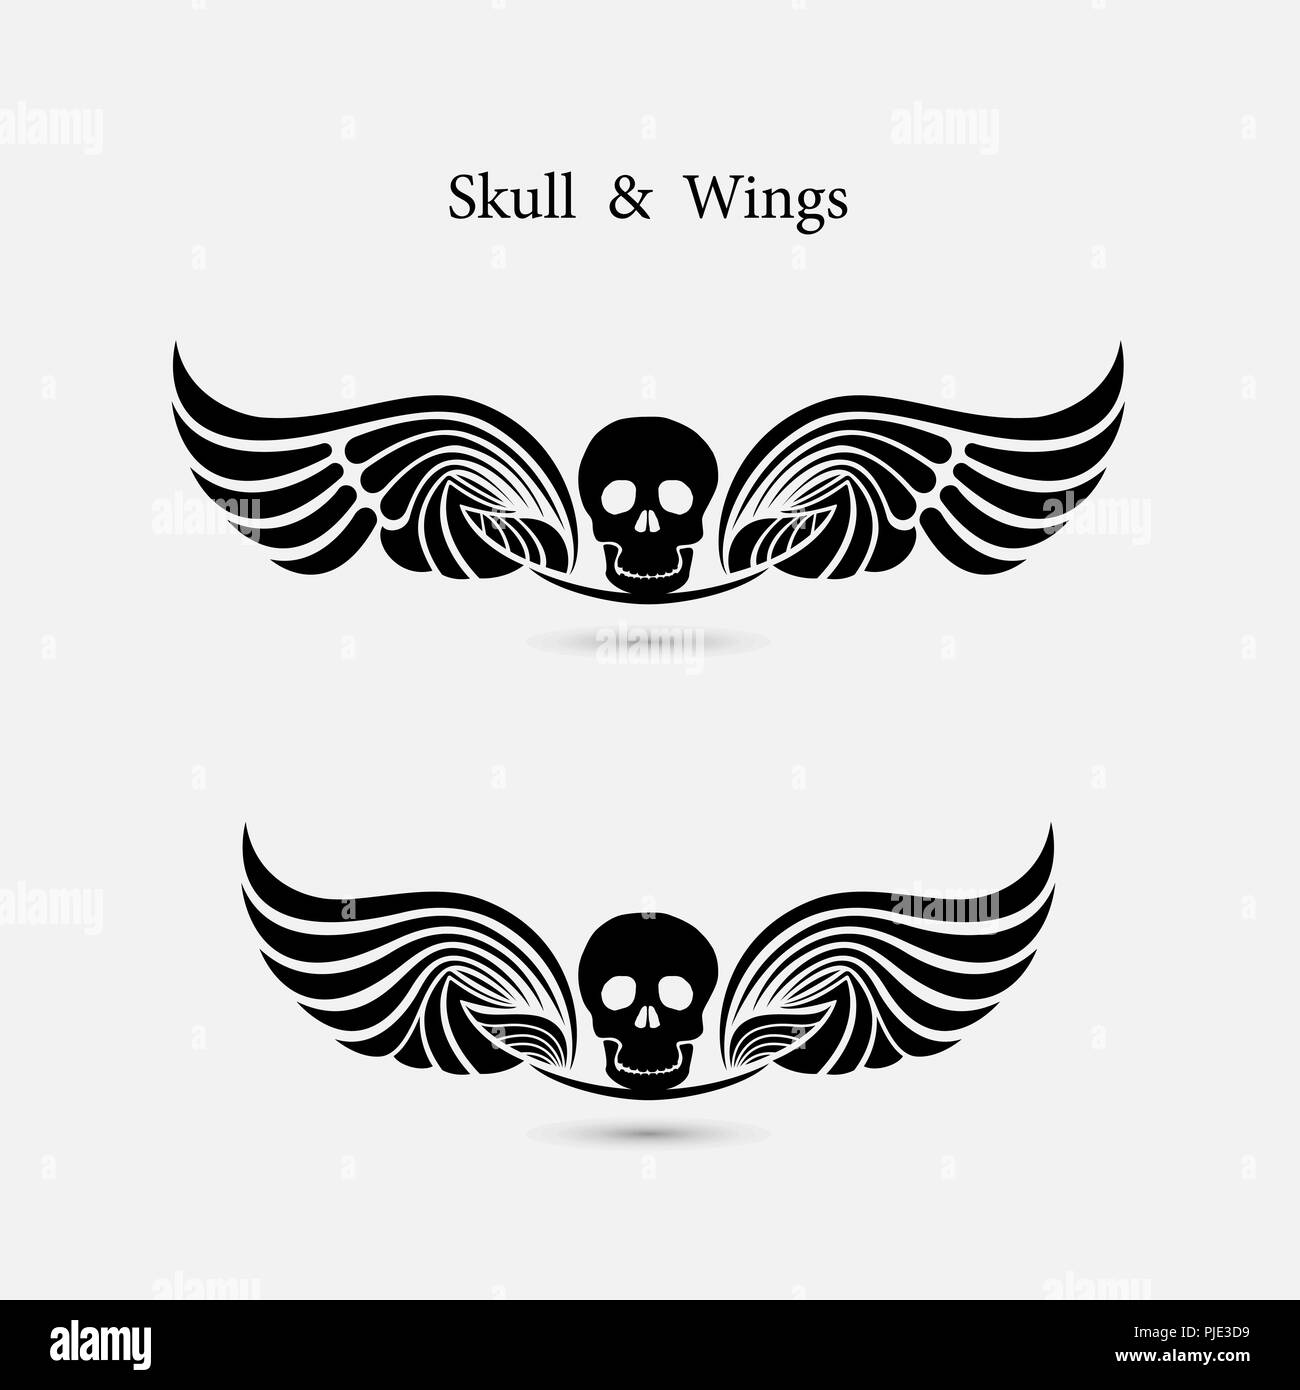 cb40194d5 Skull logo with devil wings logo design template.The Ghost symbol.Halloween  background.